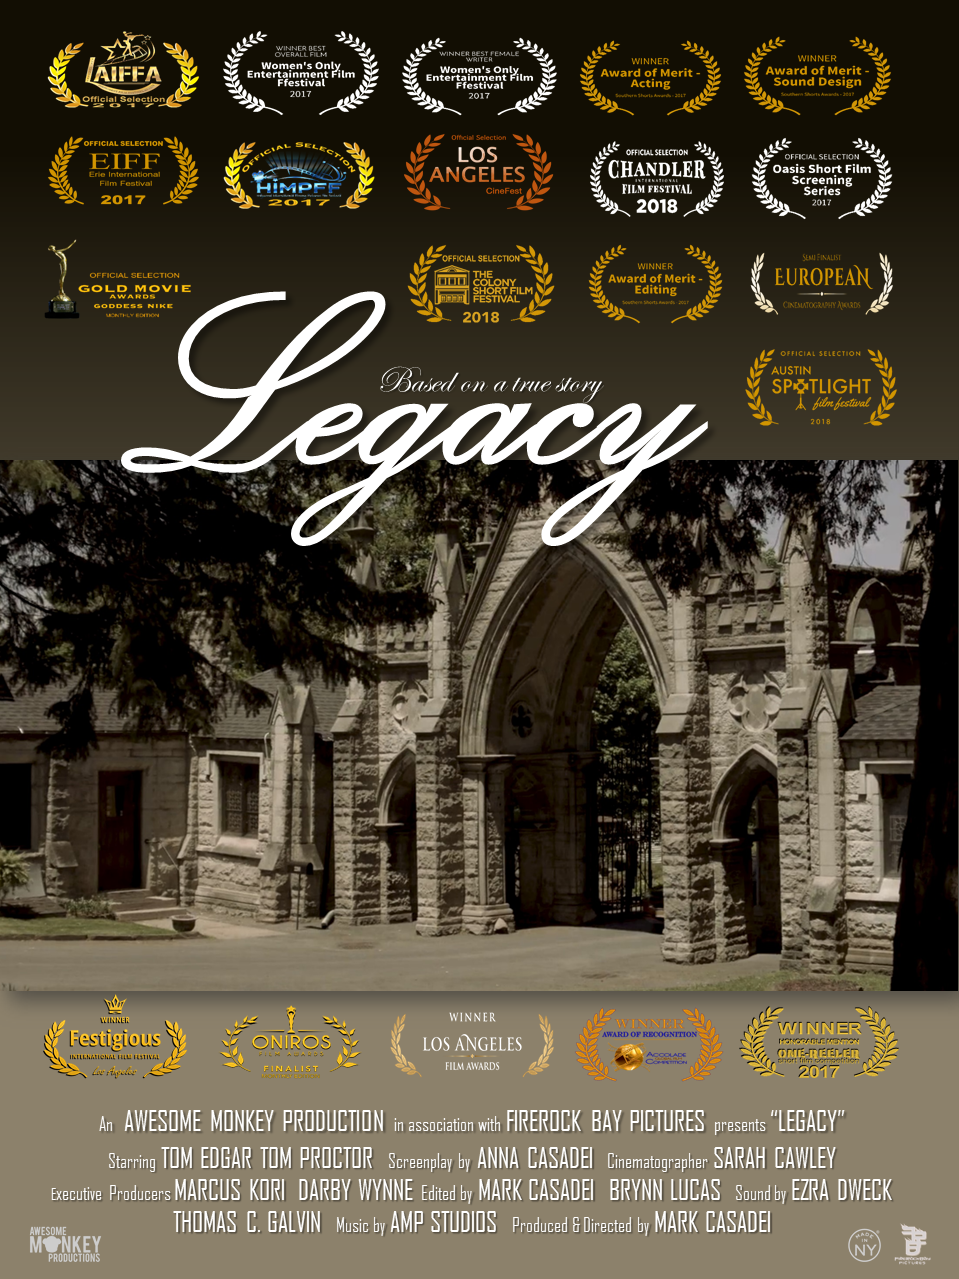 LEGACY Poster for Spotlight